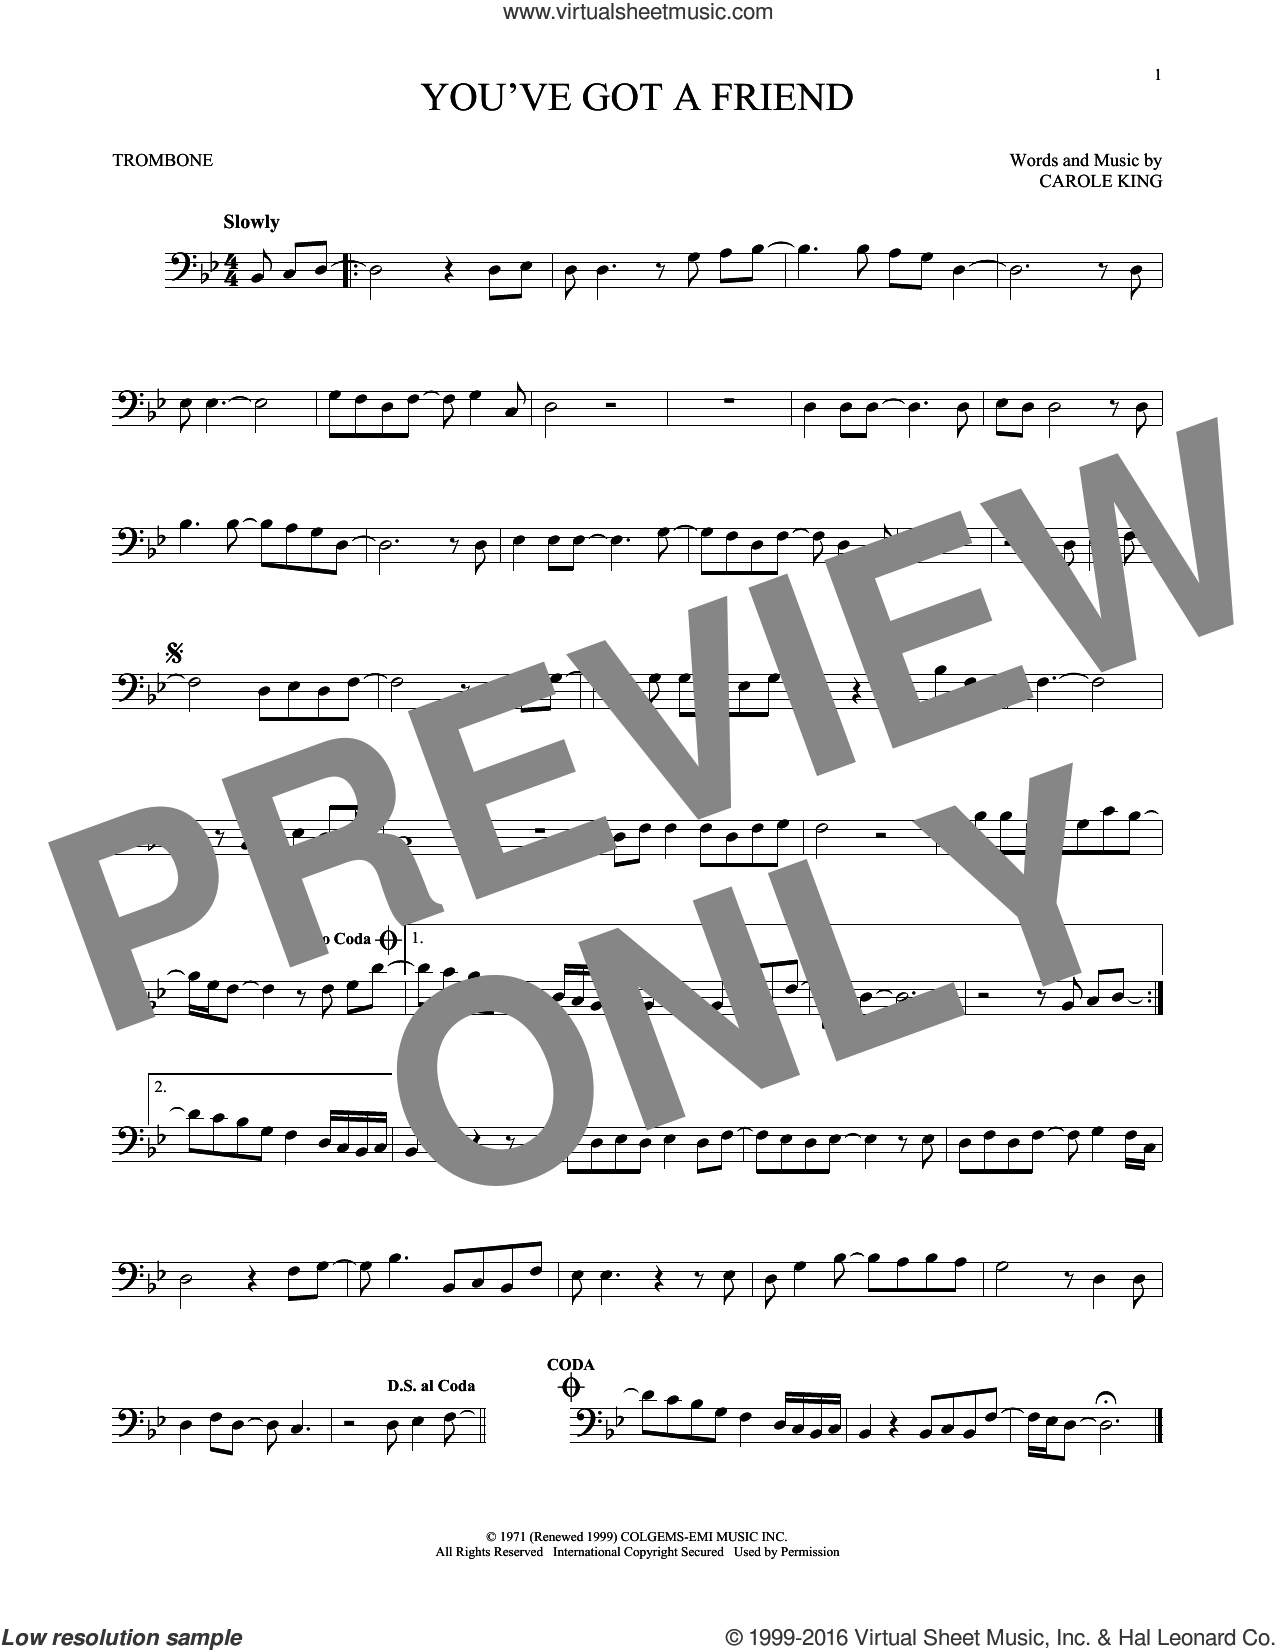 You've Got A Friend sheet music for trombone solo by James Taylor and Carole King, intermediate skill level